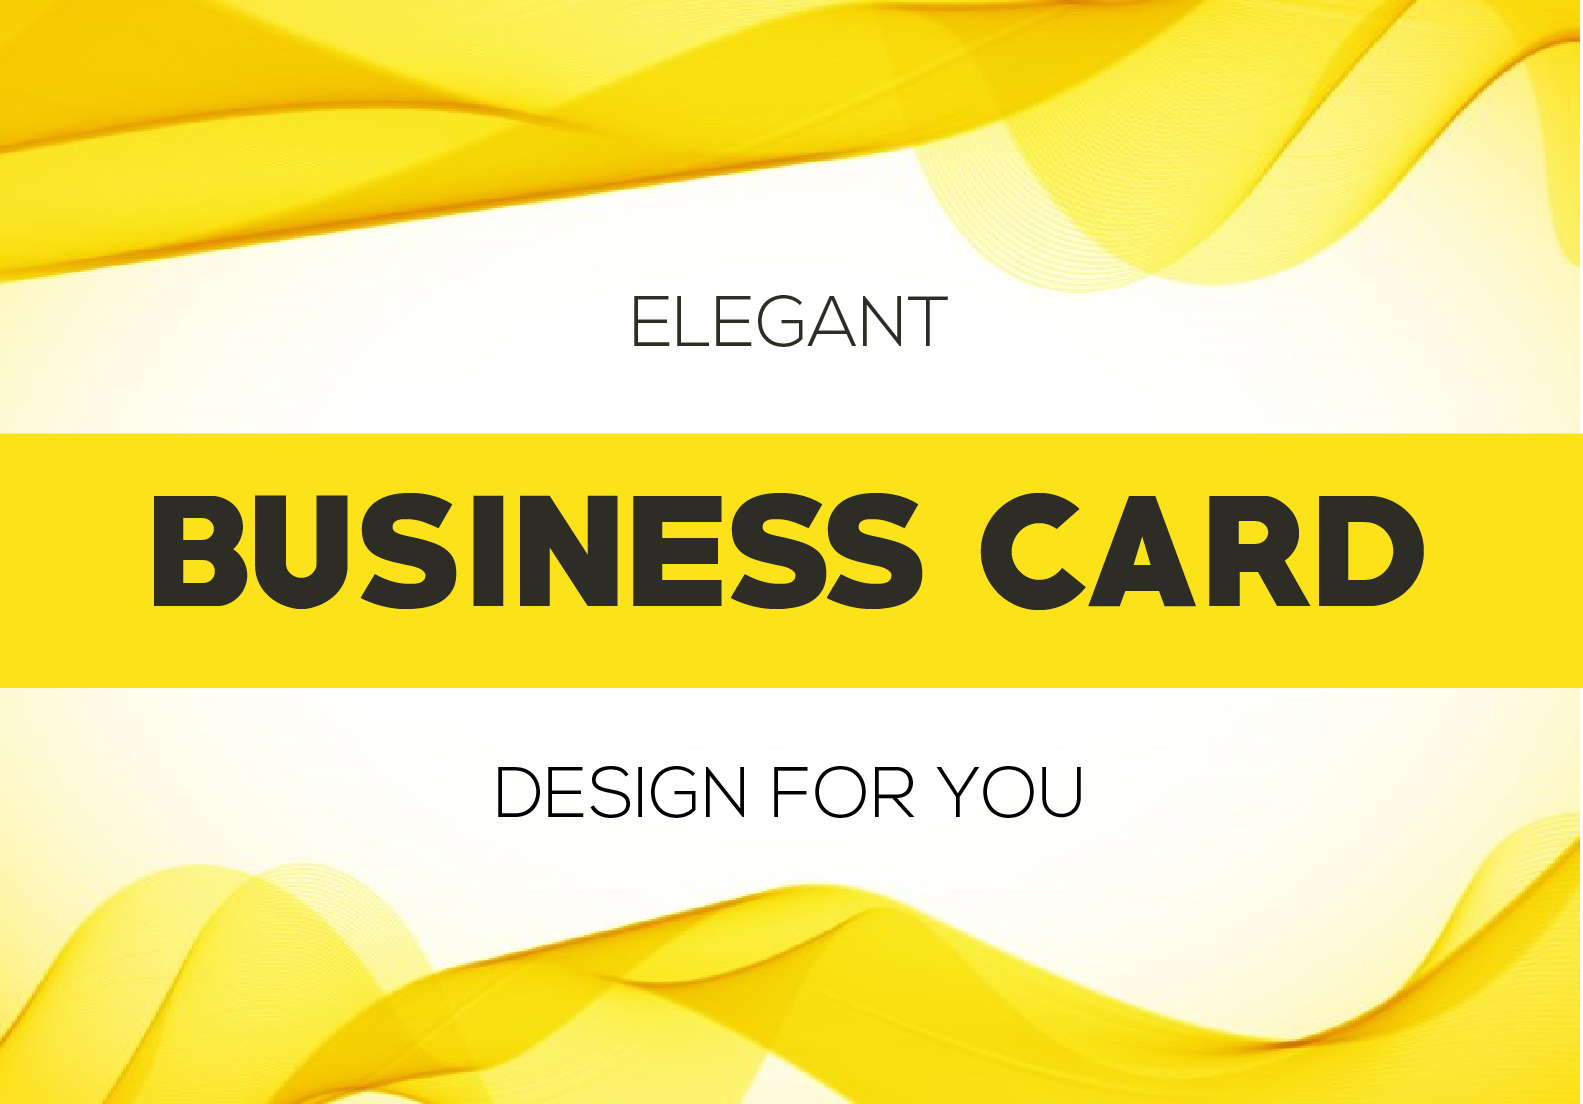 I will design an elegant looking business card for you